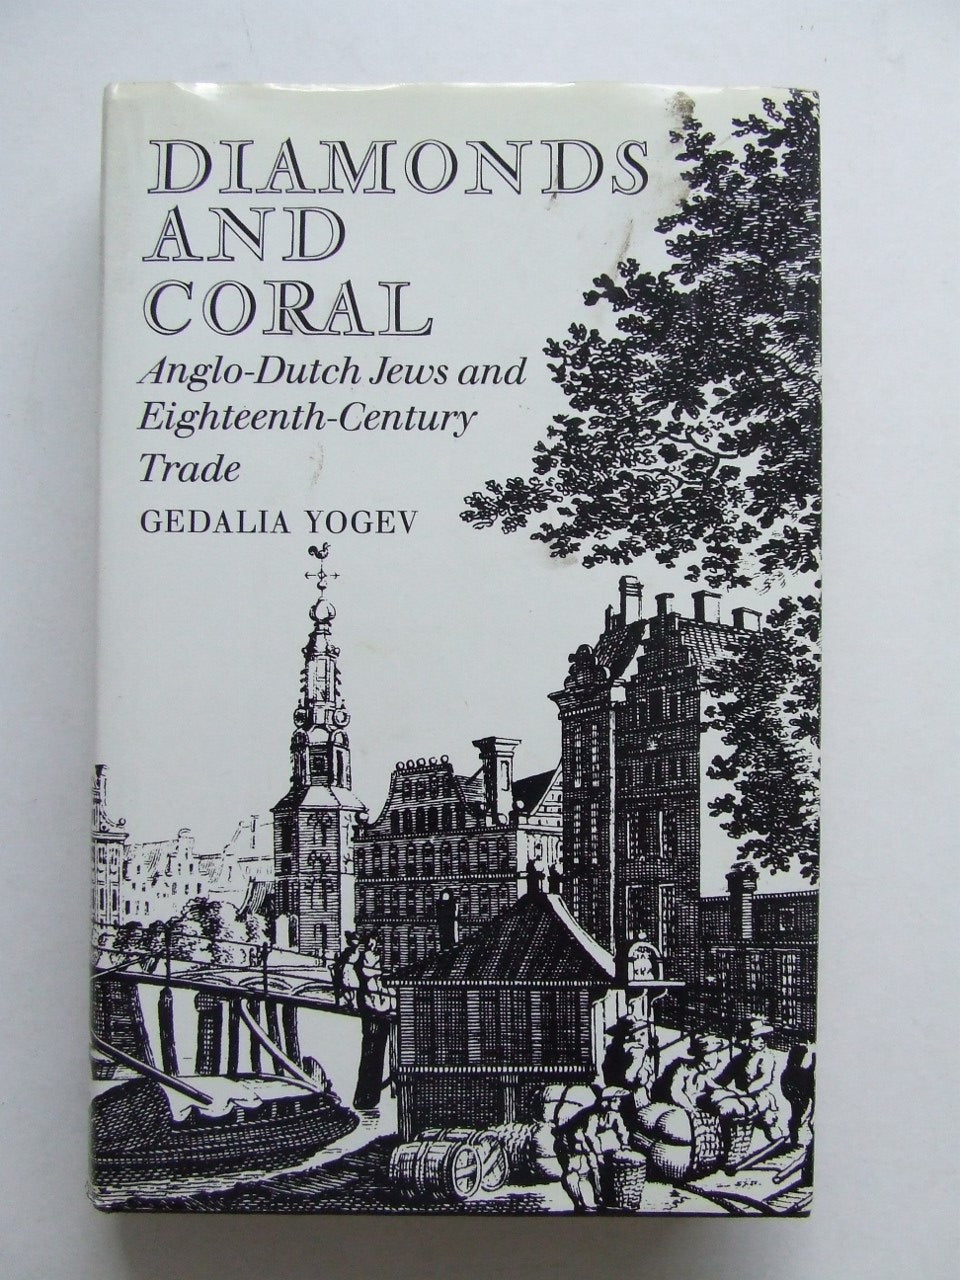 Diamonds and Coral, Anglo-Dutch Jews and Eighteenth Century Trade